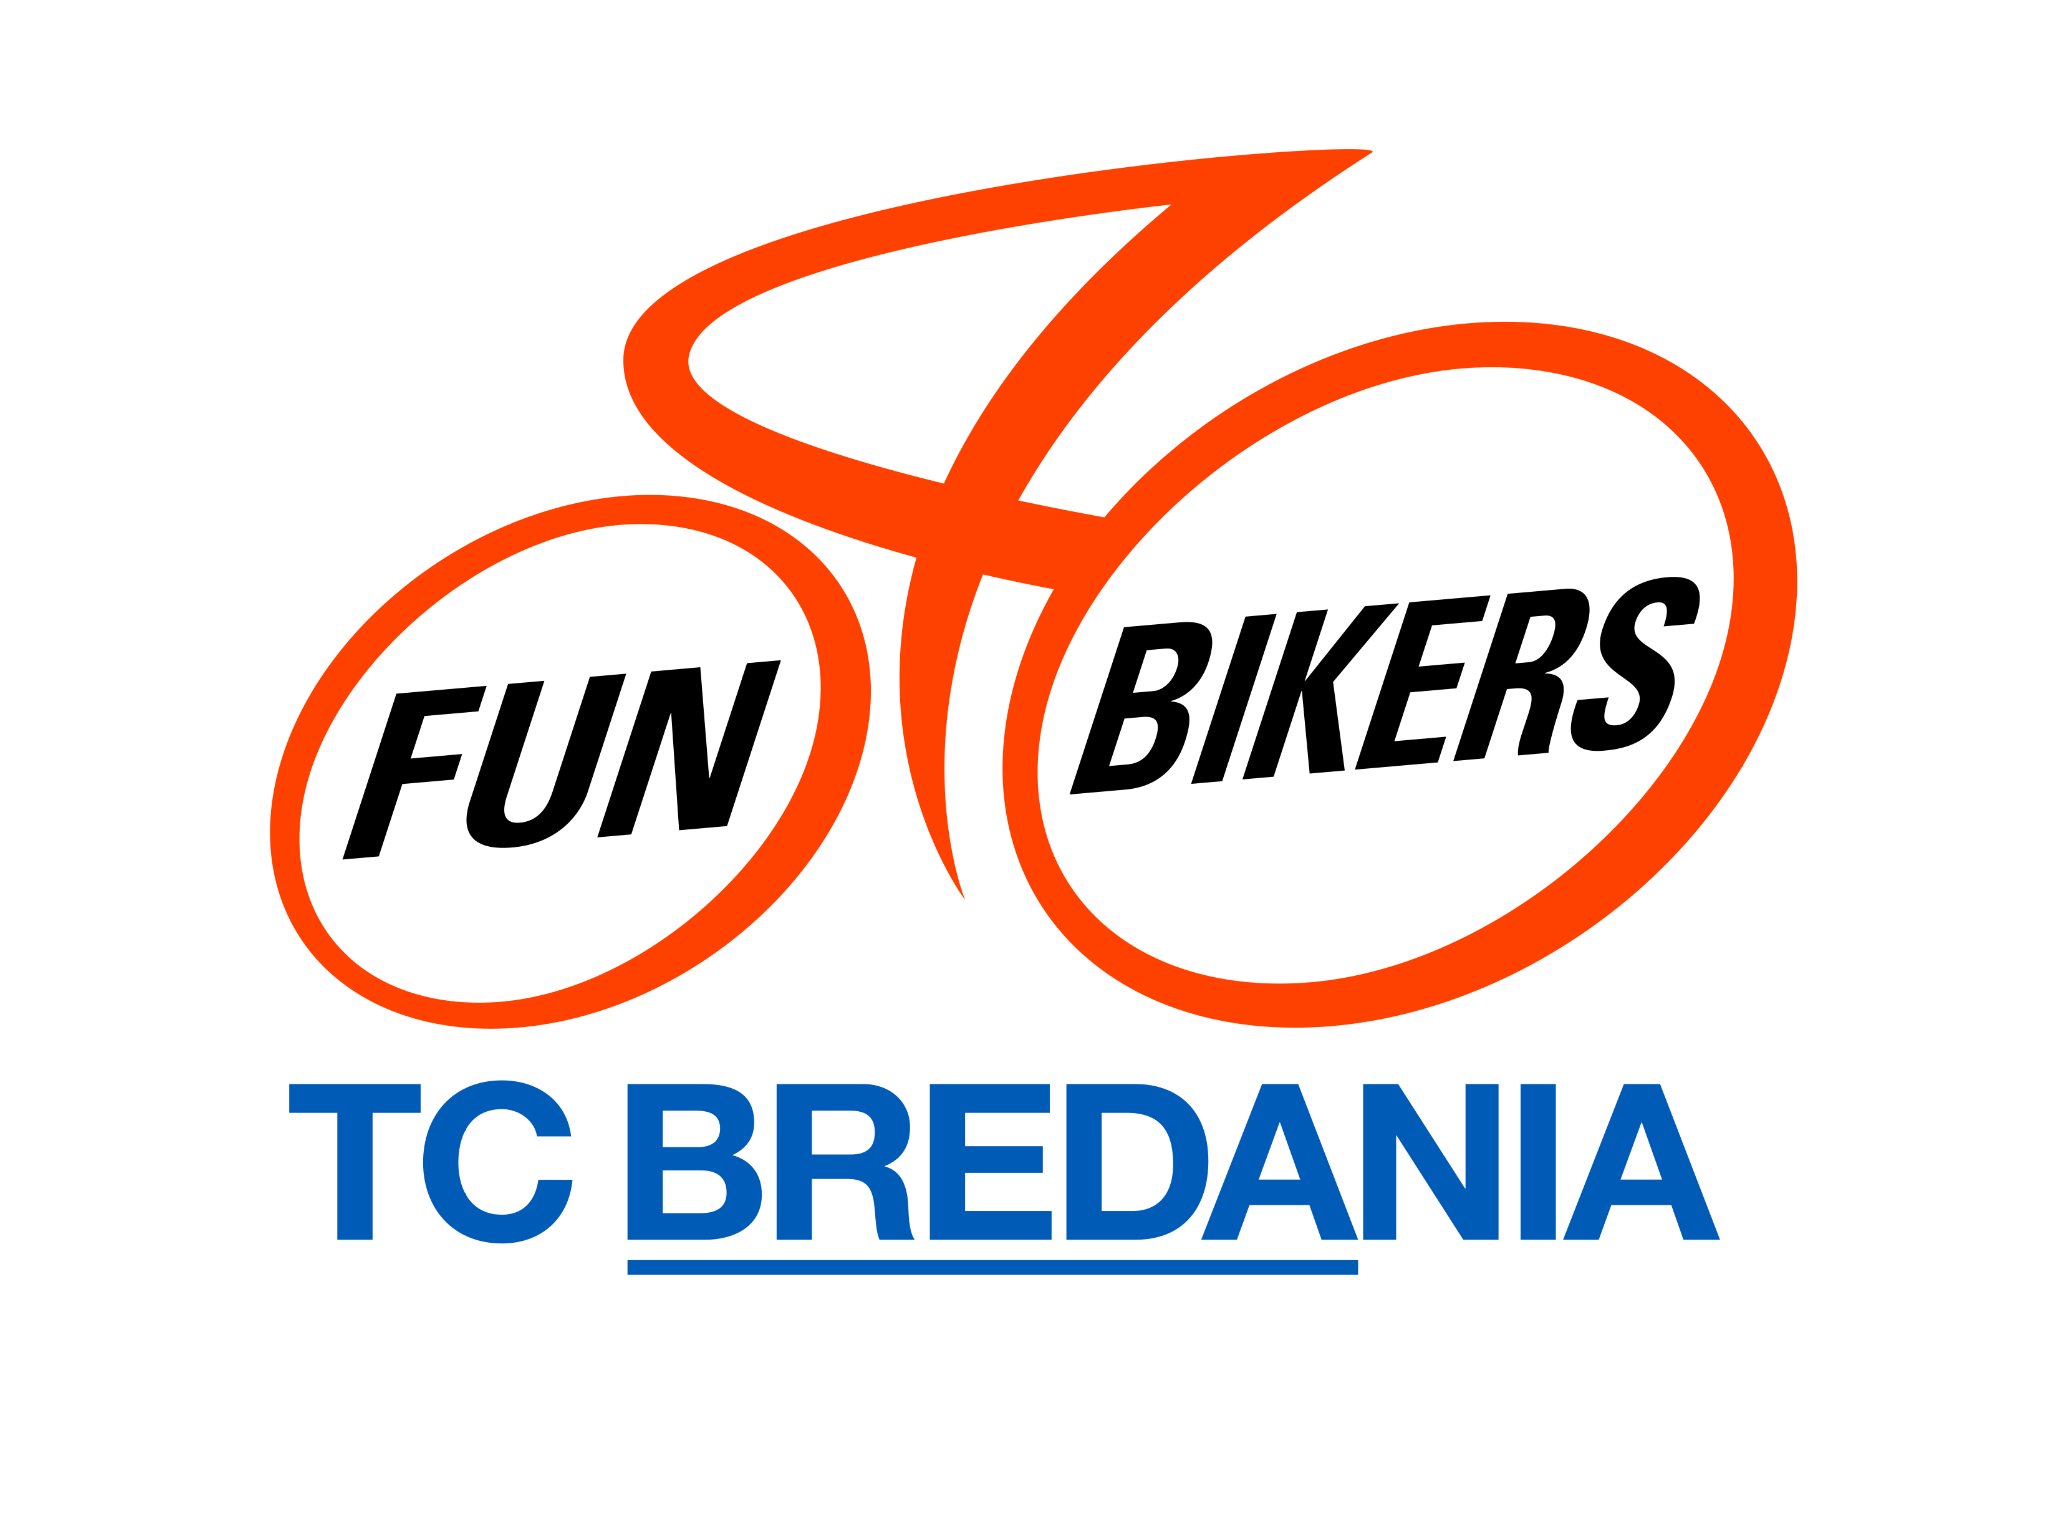 Logo TC Bredania - Fun4Bikers